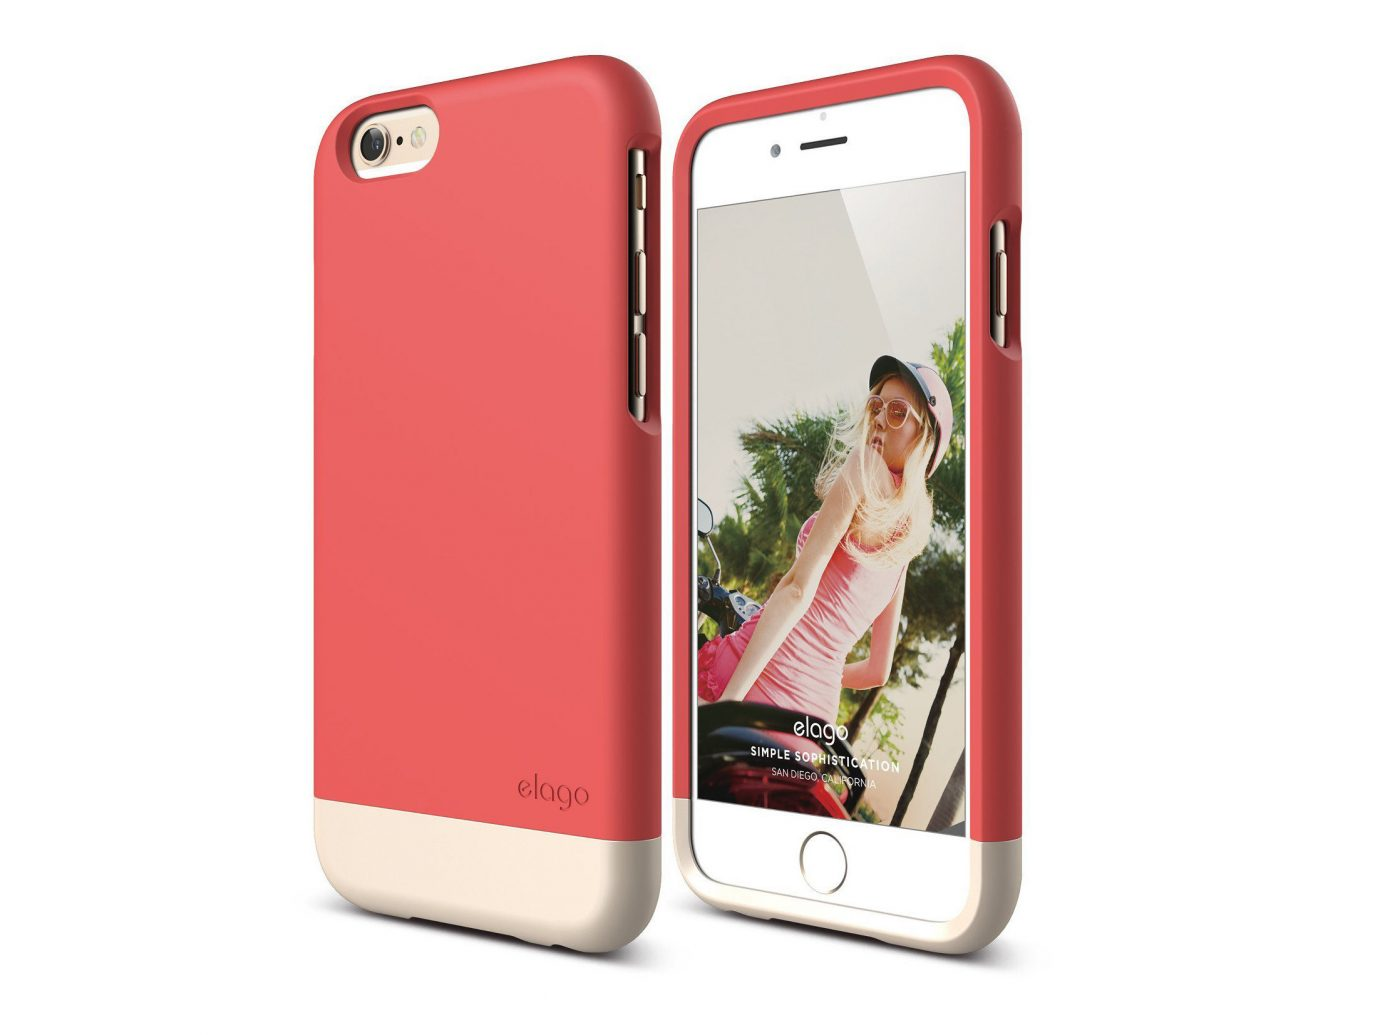 Style + Design red mobile phone product gadget electronic device communication device telephony product design feature phone mobile phone accessories case technology telephone smartphone portable communications device mobile phone case